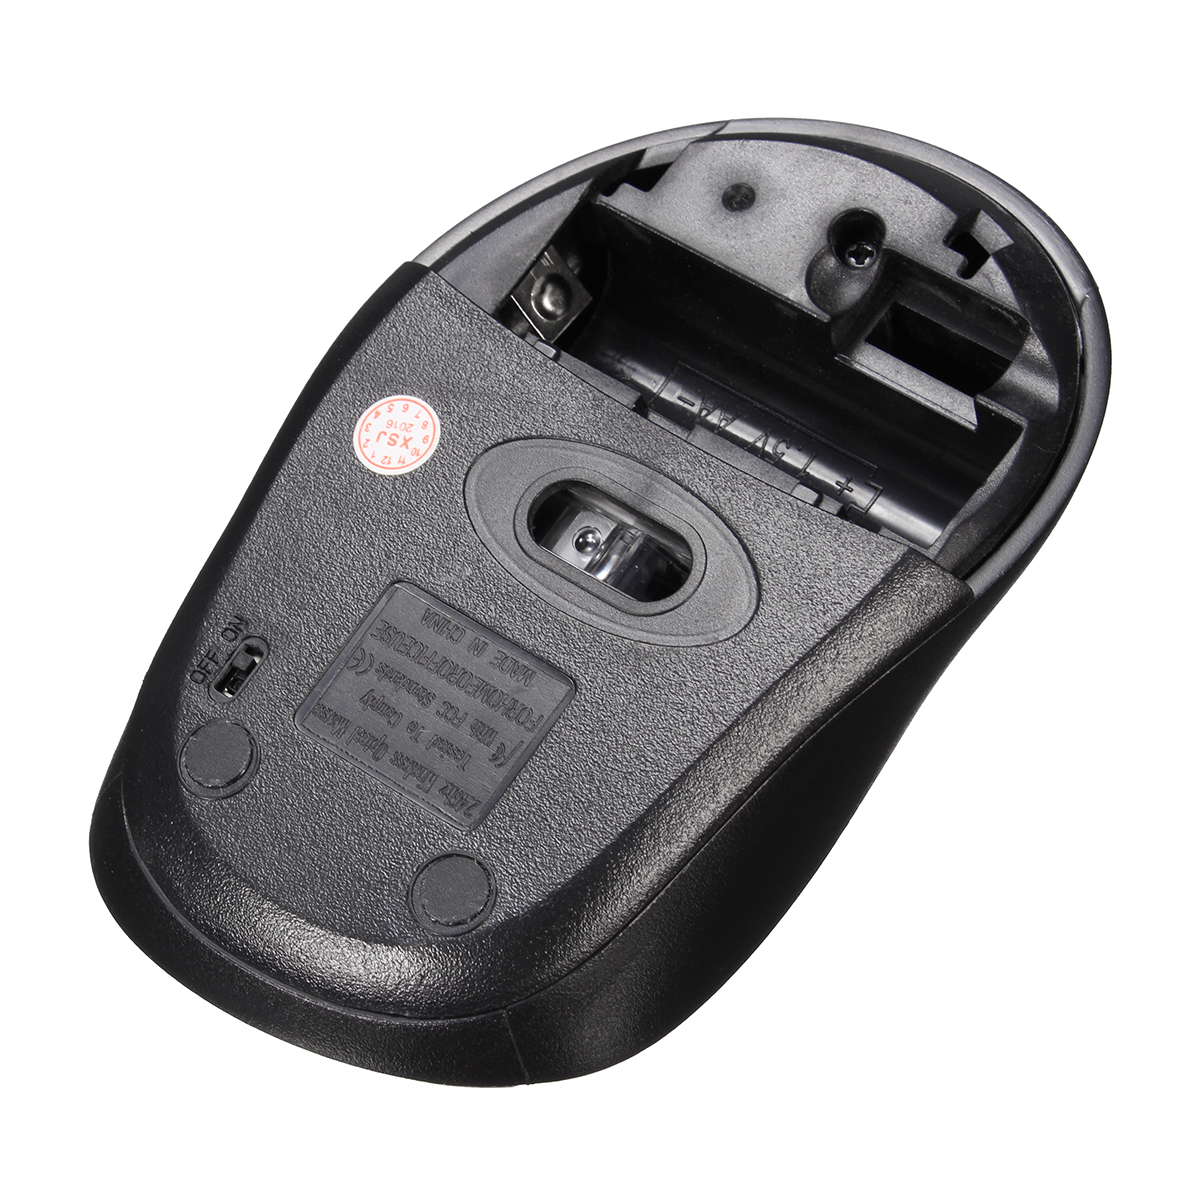 HXSJ X40 2400DPI 6 Buttons ABS 2.4GHz Wireless Optical Gaming Mouse